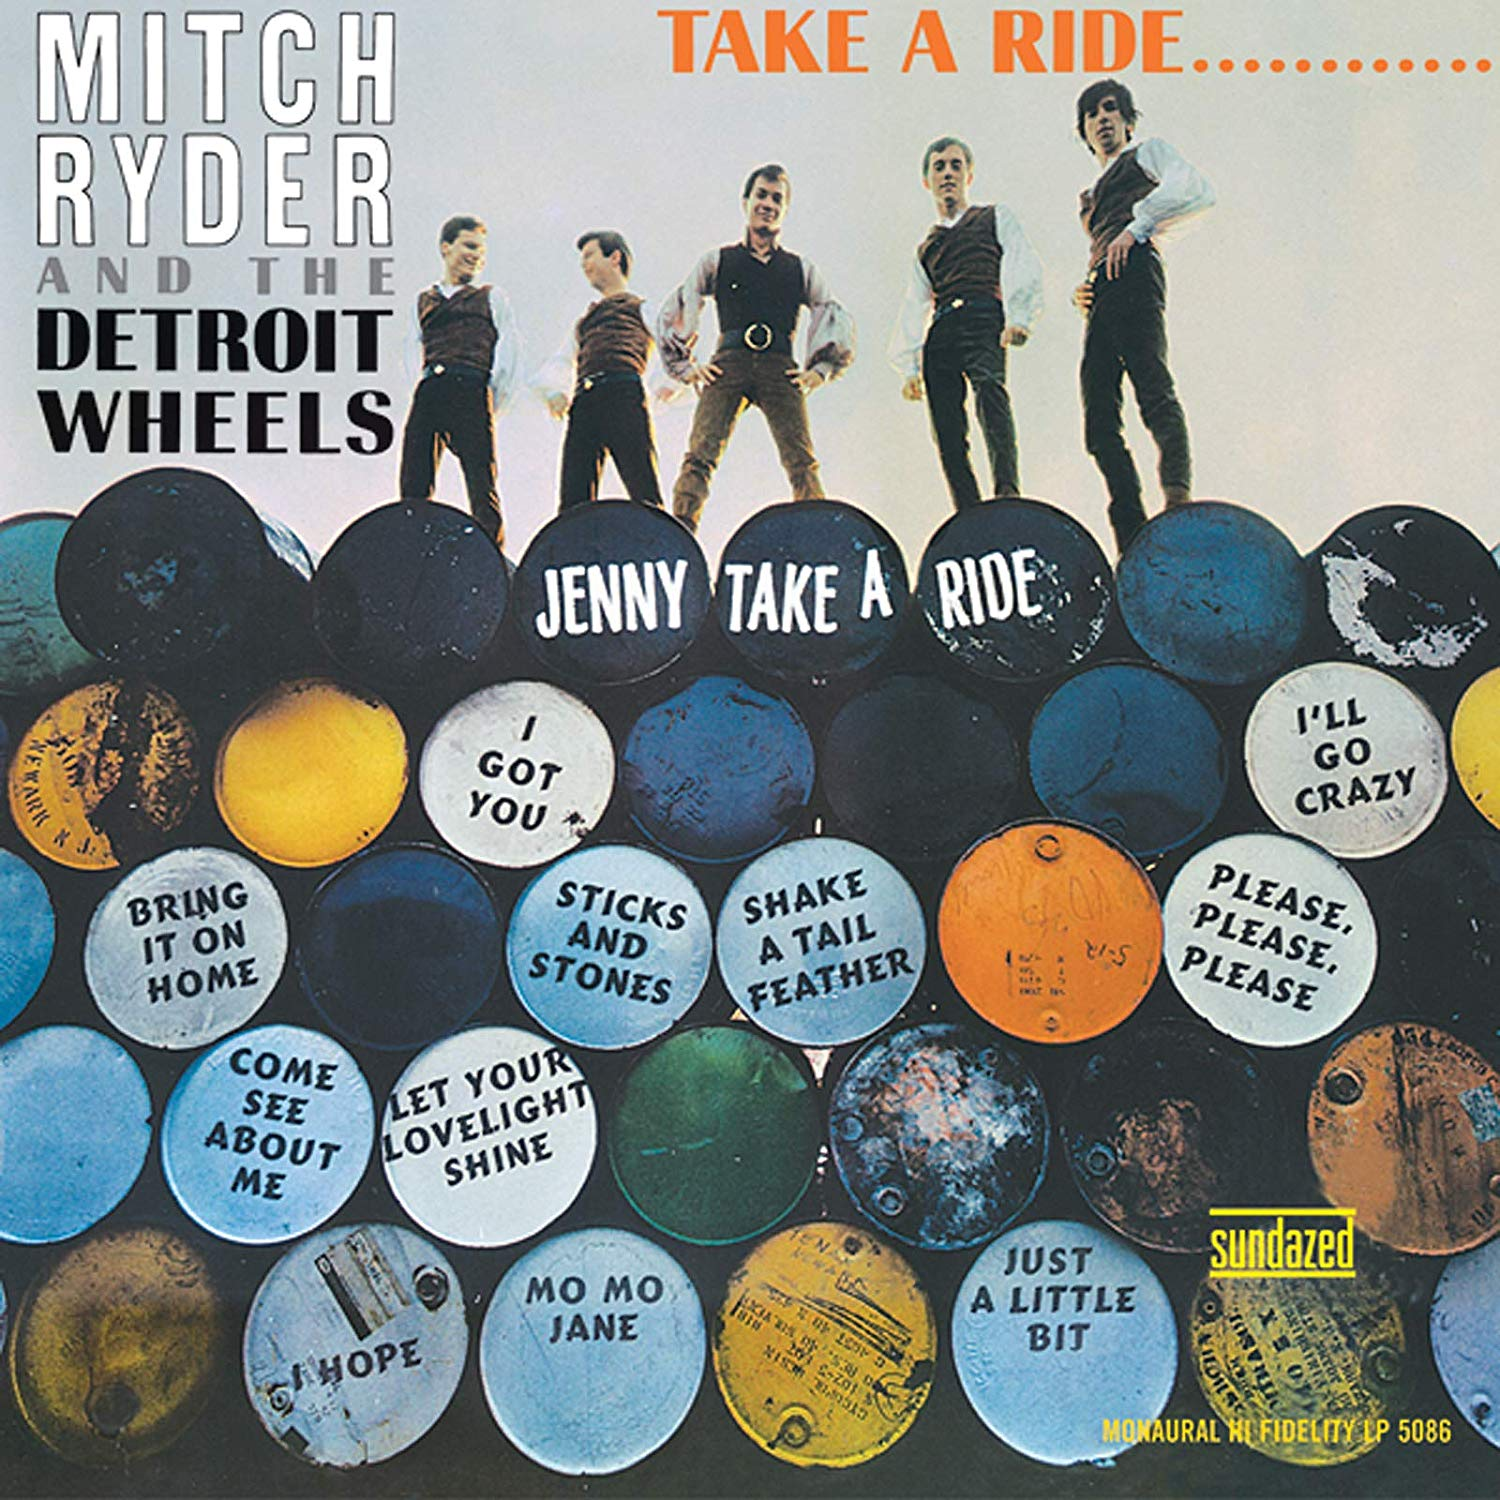 Mitch Ryder & The Detroit Wheels - Take A Ride... [LP] (Gold Vinyl)